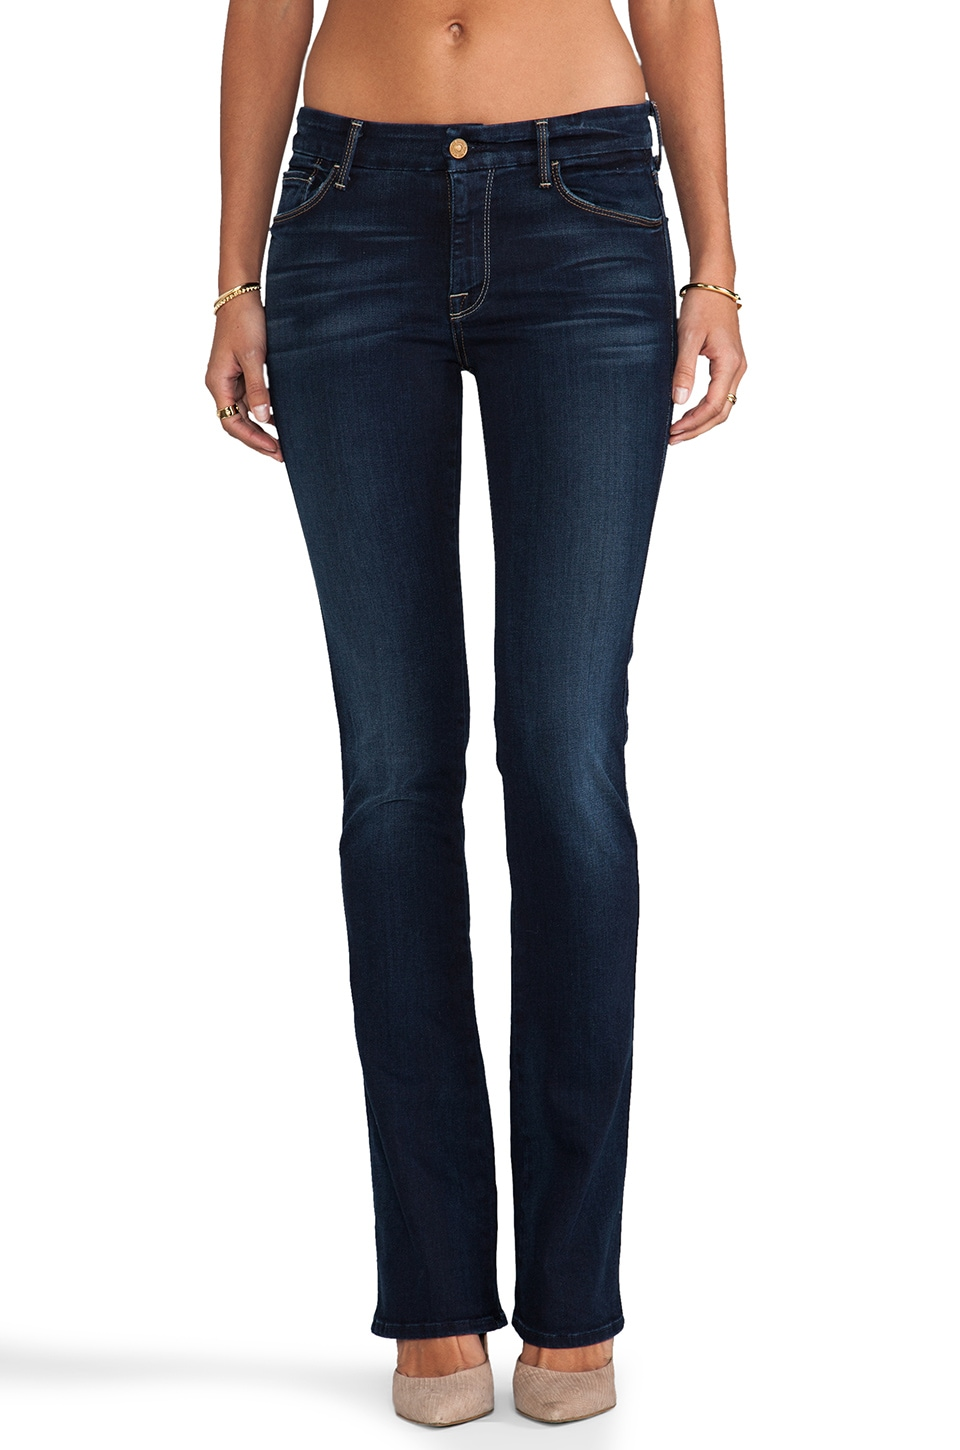 7 For All Mankind Slim Illusion The Skinny Boot Cut in Merci Blue